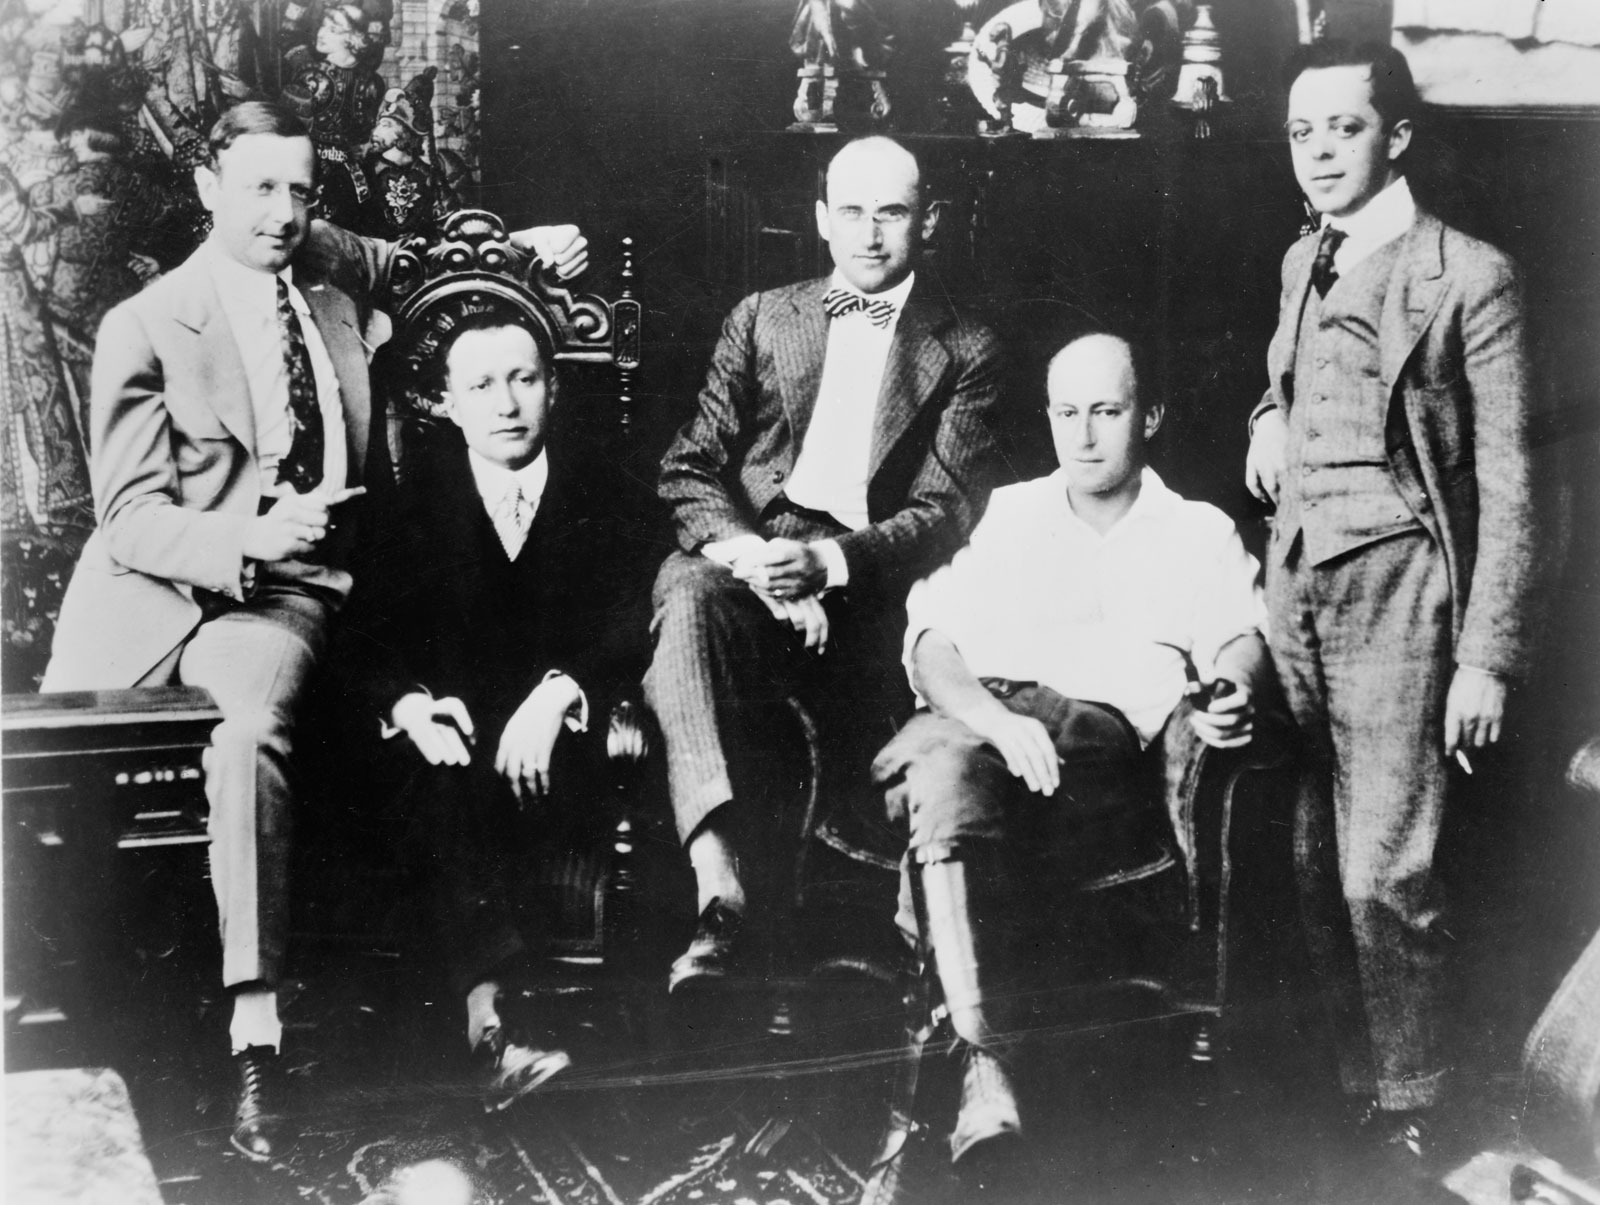 Fig. 2: (Left to right is the executive team heading up the Famous Players-Lasky Corporation circa 1916) Jesse L. Lasky, Adolph Zukor, Samuel Goldwyn, Cecile B. DeMille, and Al Kaufman